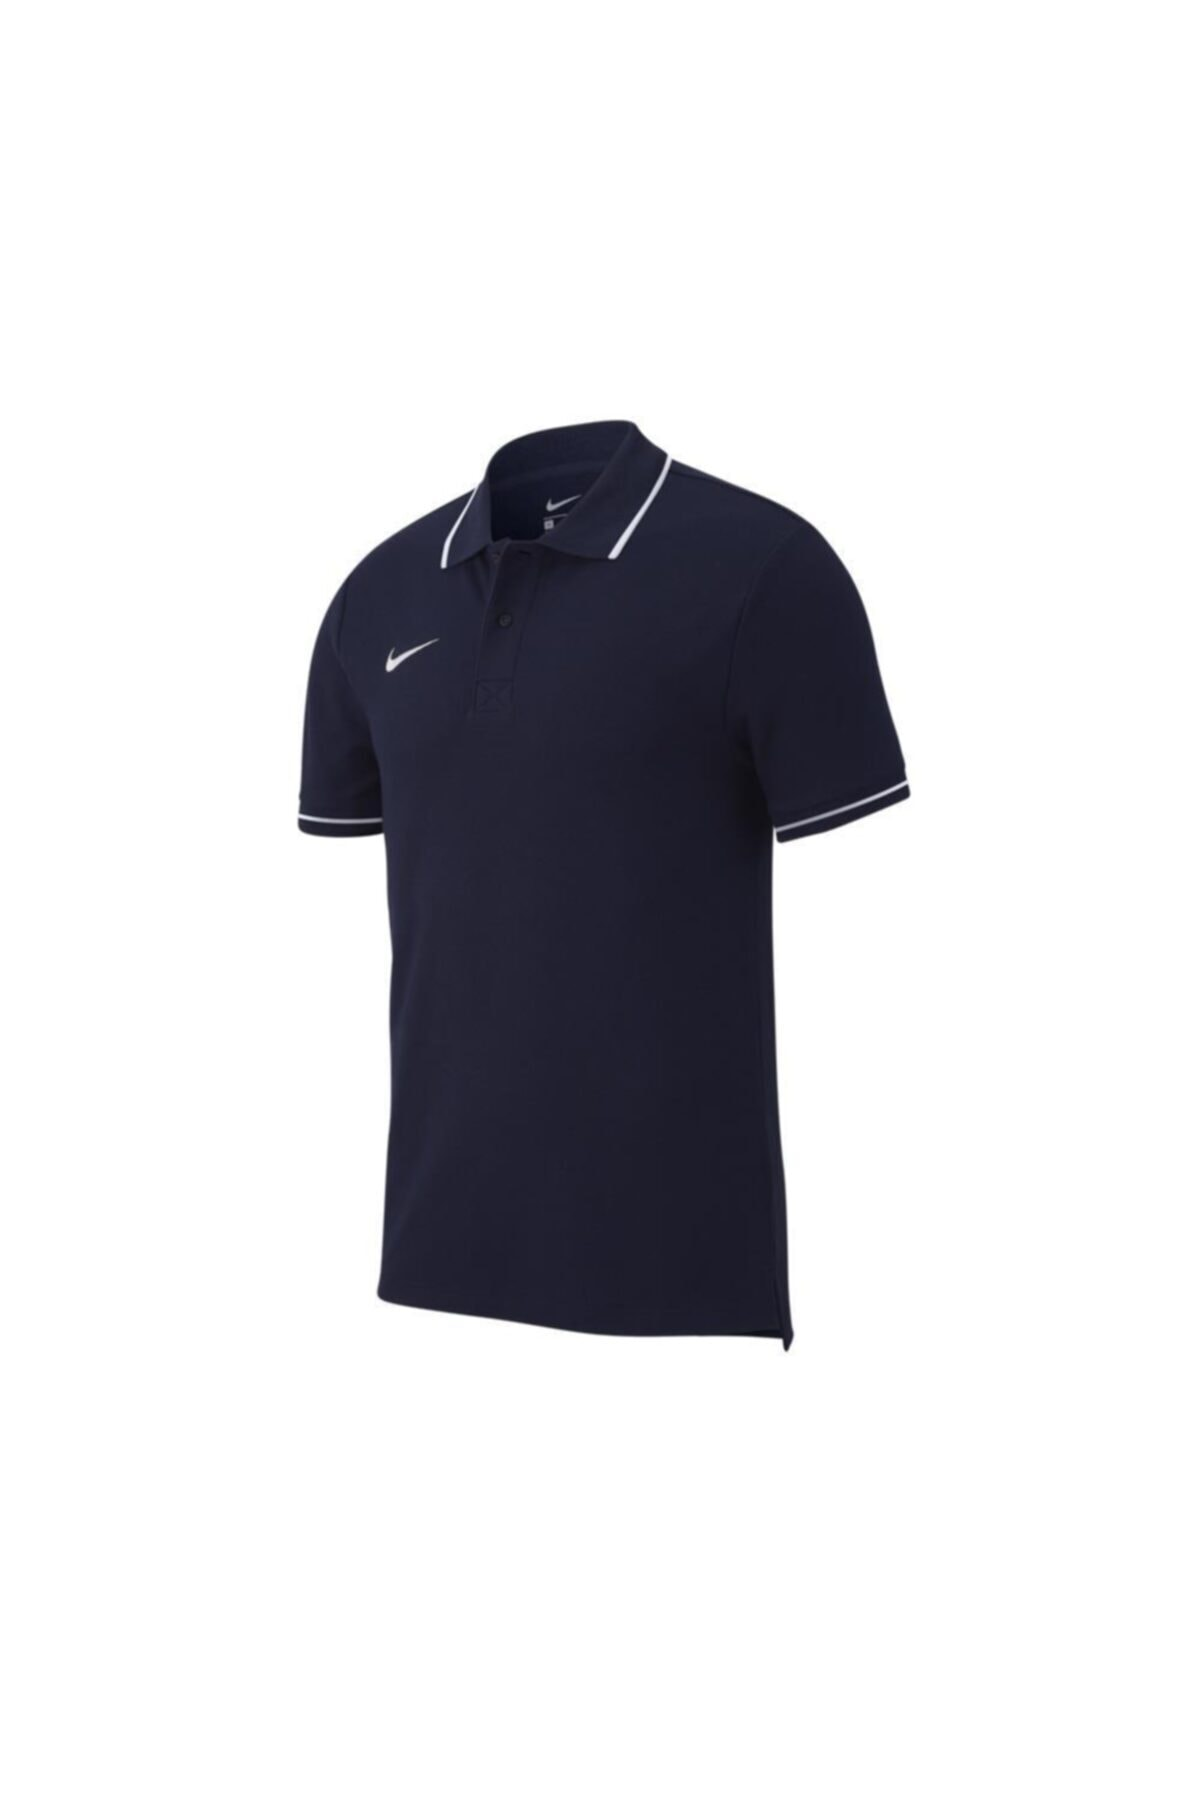 Nike M Polo Tm Club19 Ss Erkek T-shirt 1